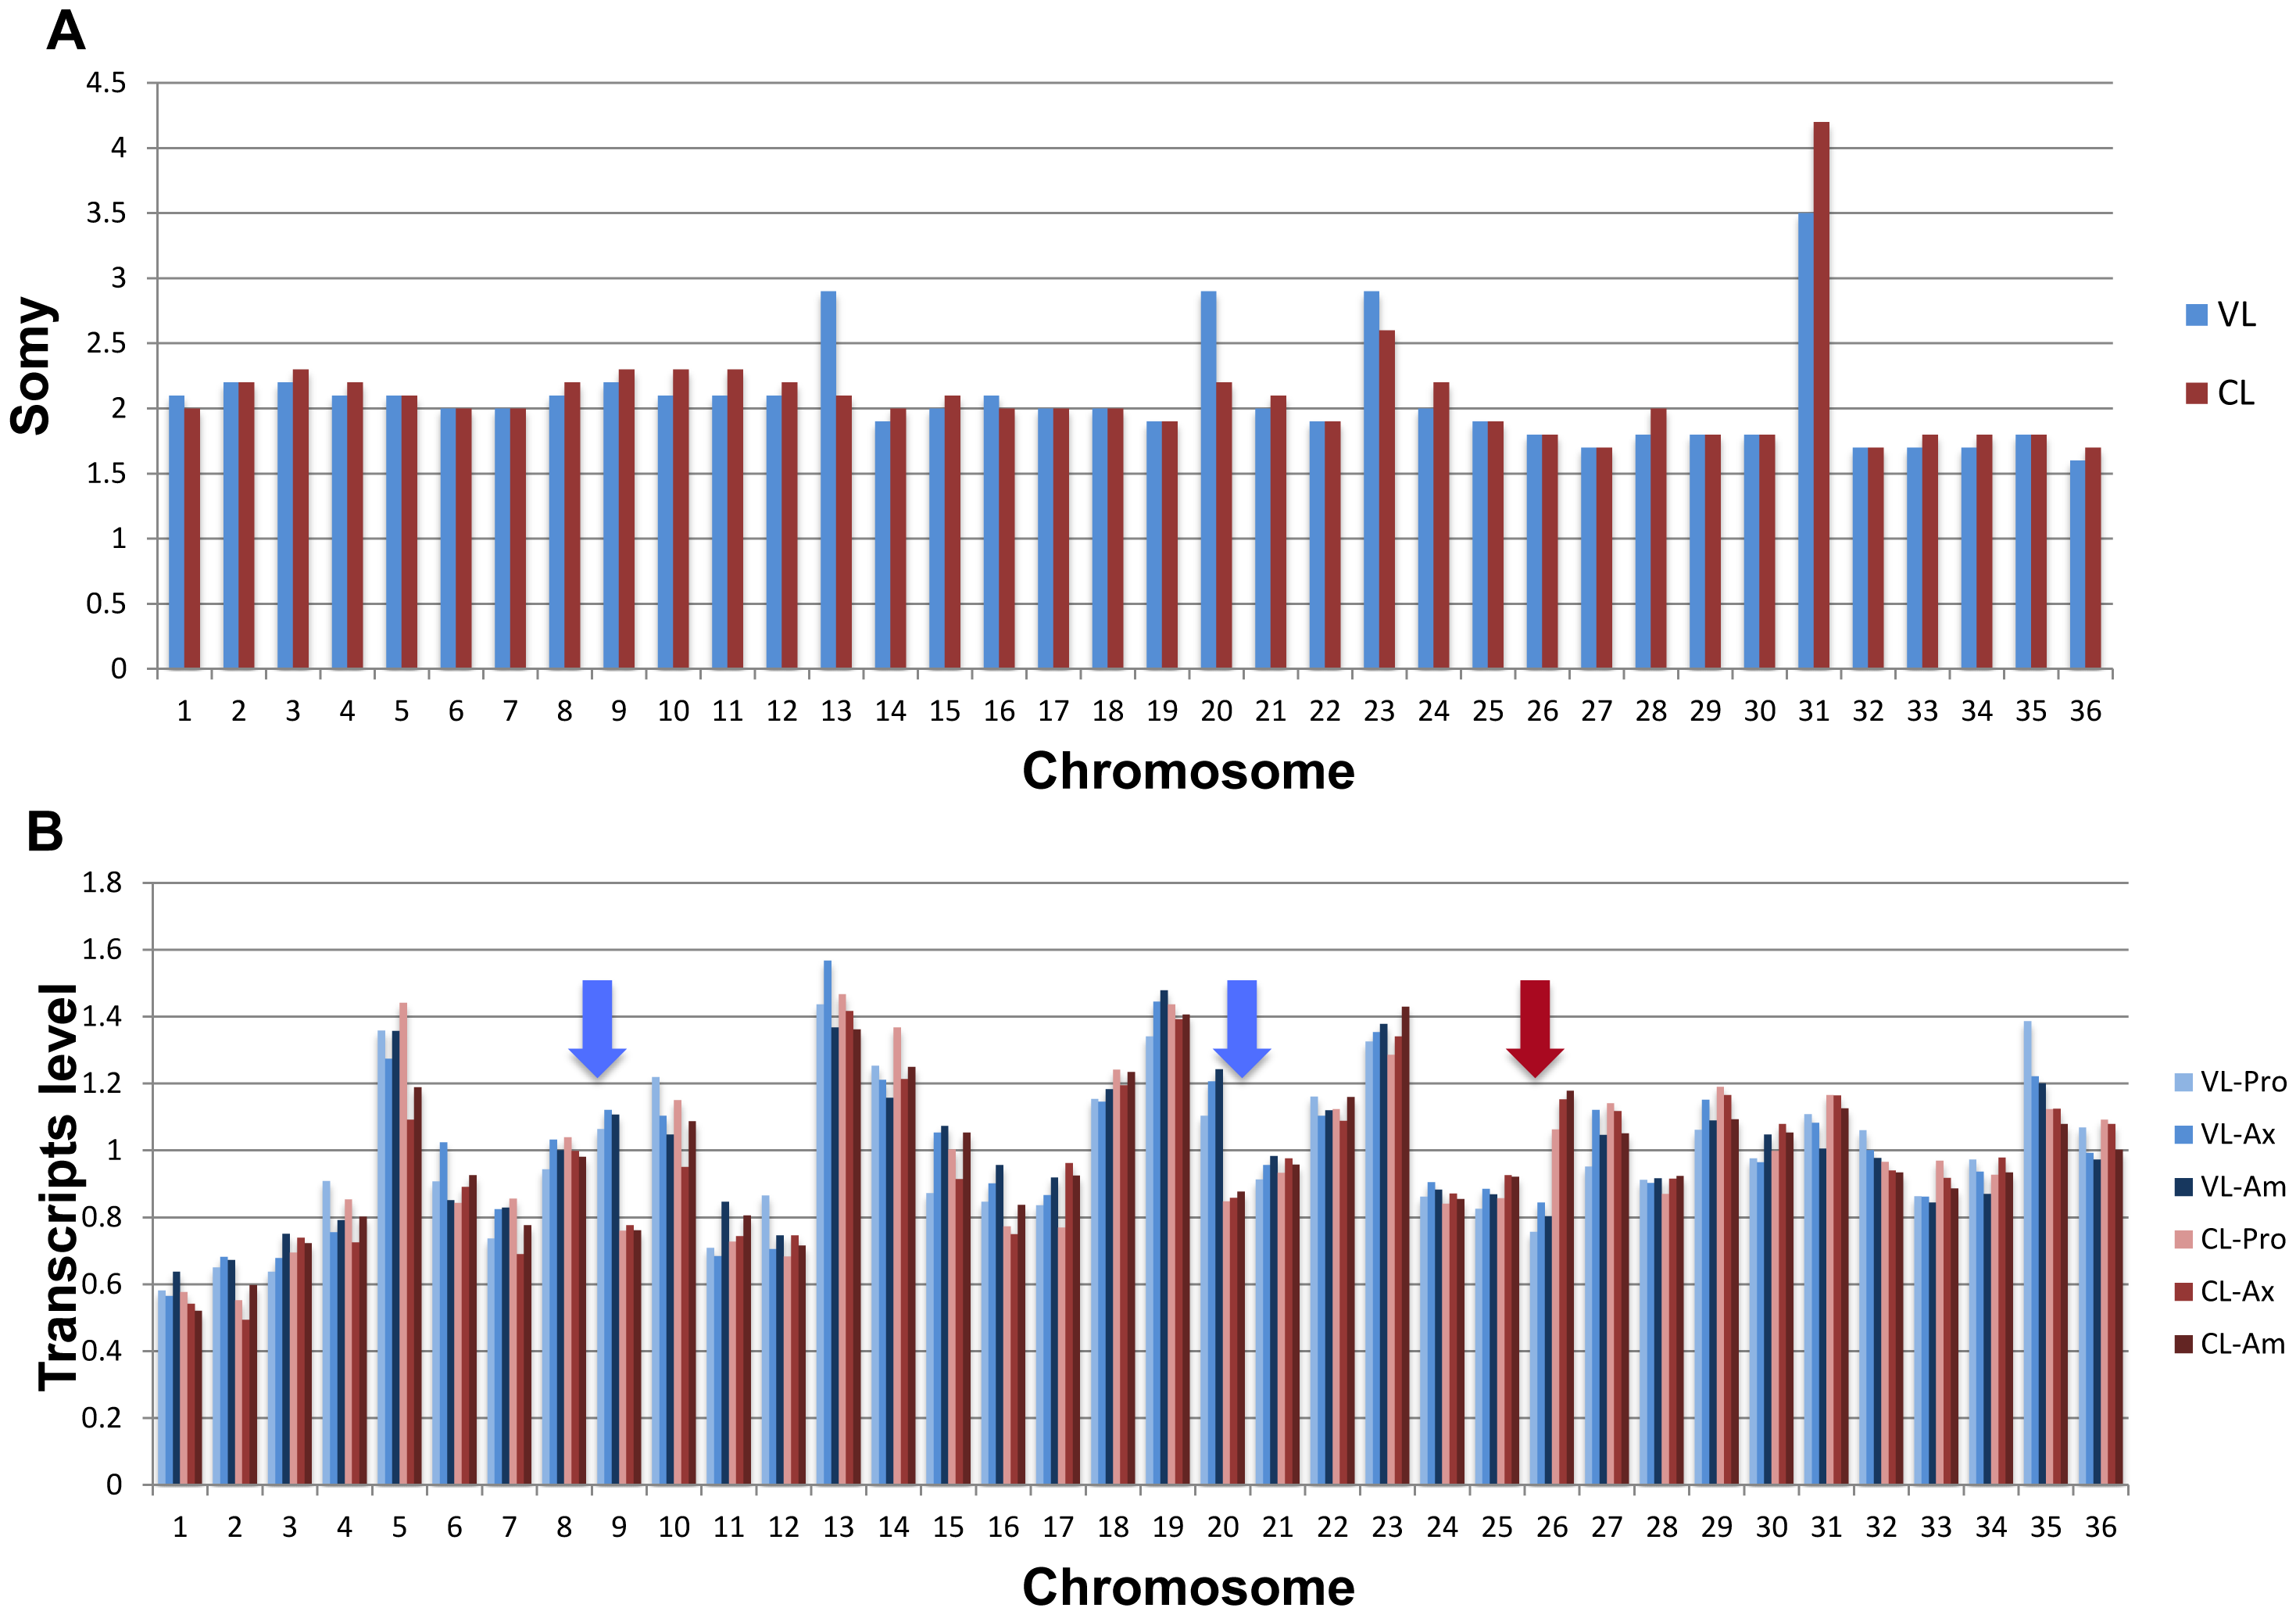 Chromosome copy number comparison between the VL-SL and CL-SL strains (Panel A).